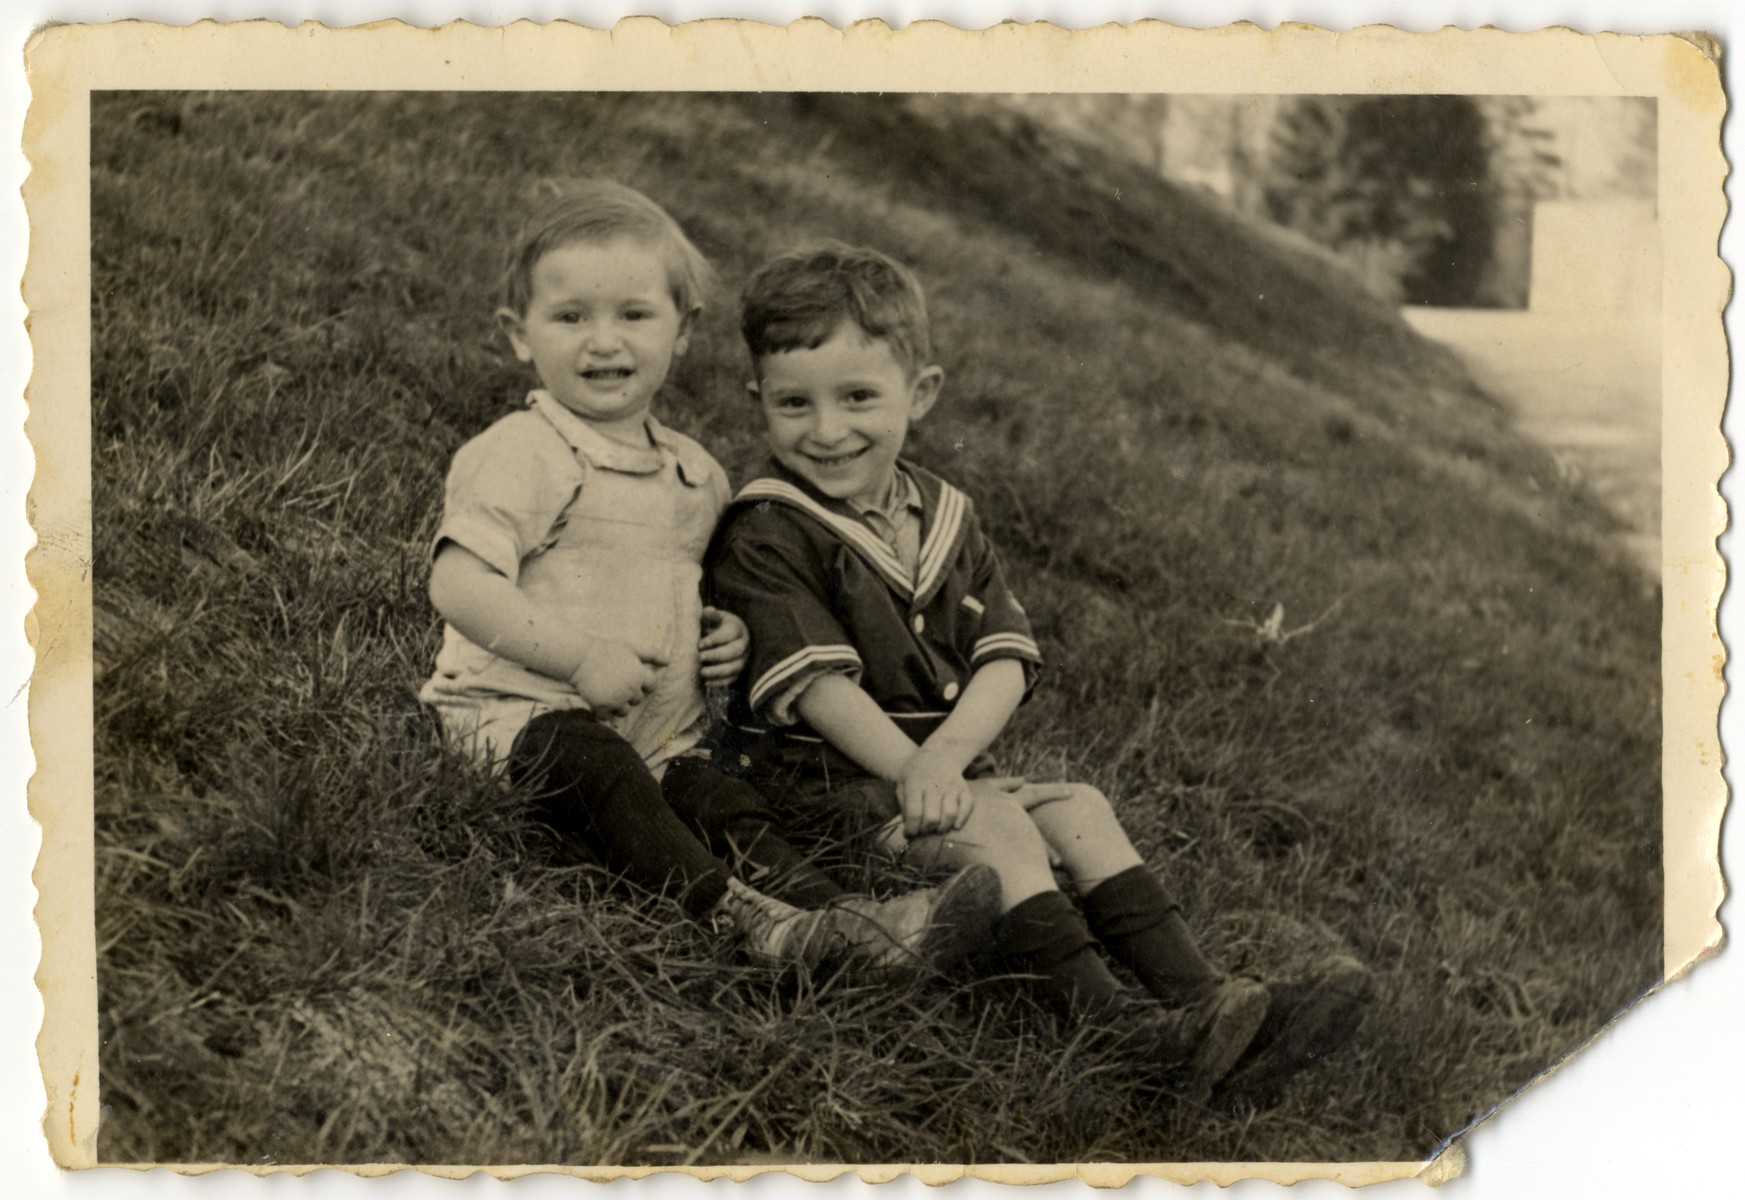 Irving and Fred Feldman sit on a grassy hill in the Wels displaced persons' camp.